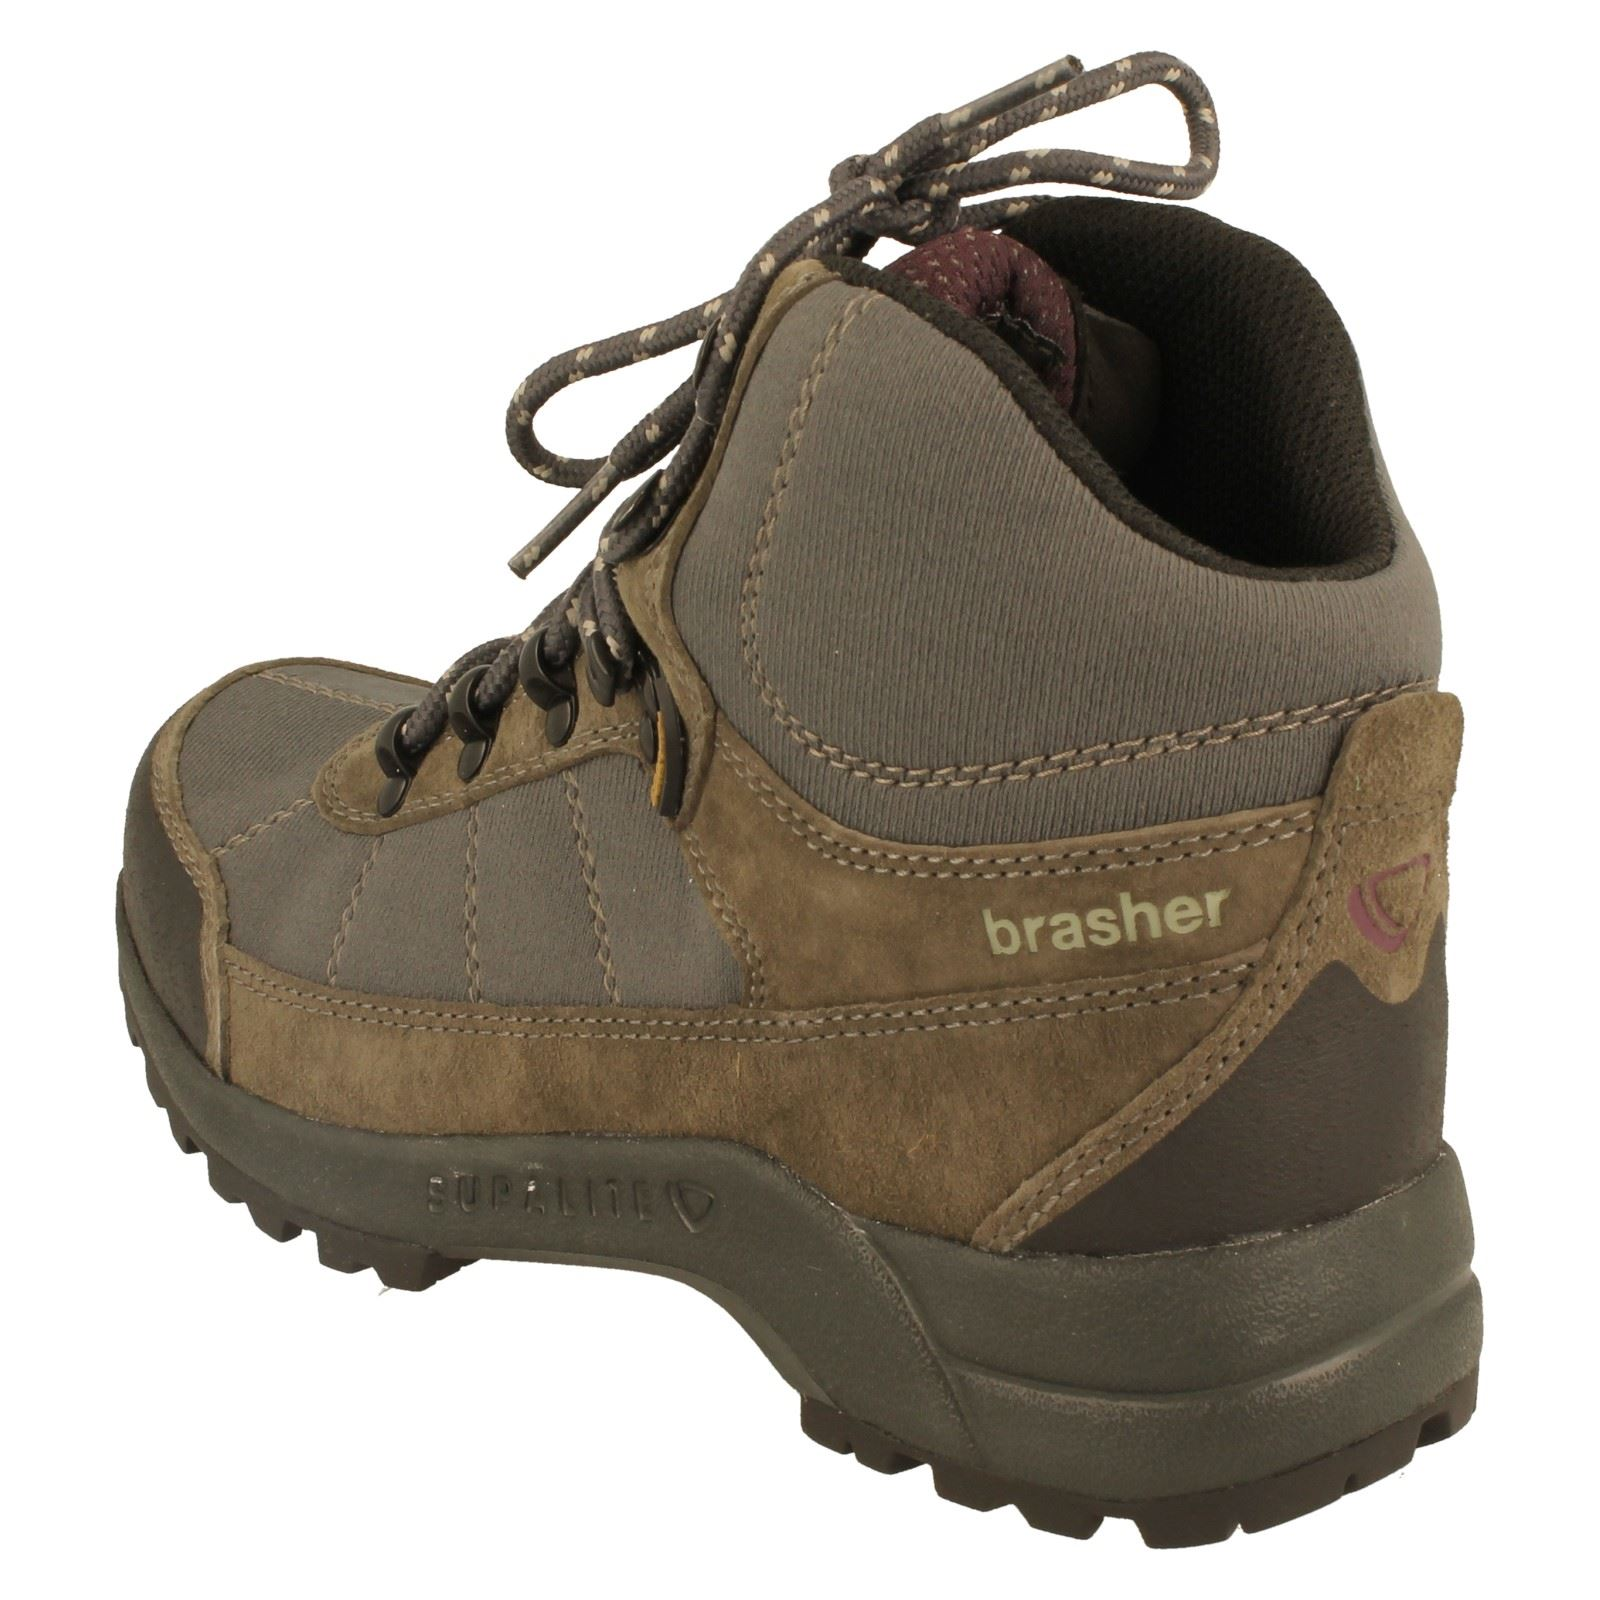 Amazing BRASHER WOMENS HILLMASTER LEATHER GORETEX WALKING BOOTS BROWN UK 4 8